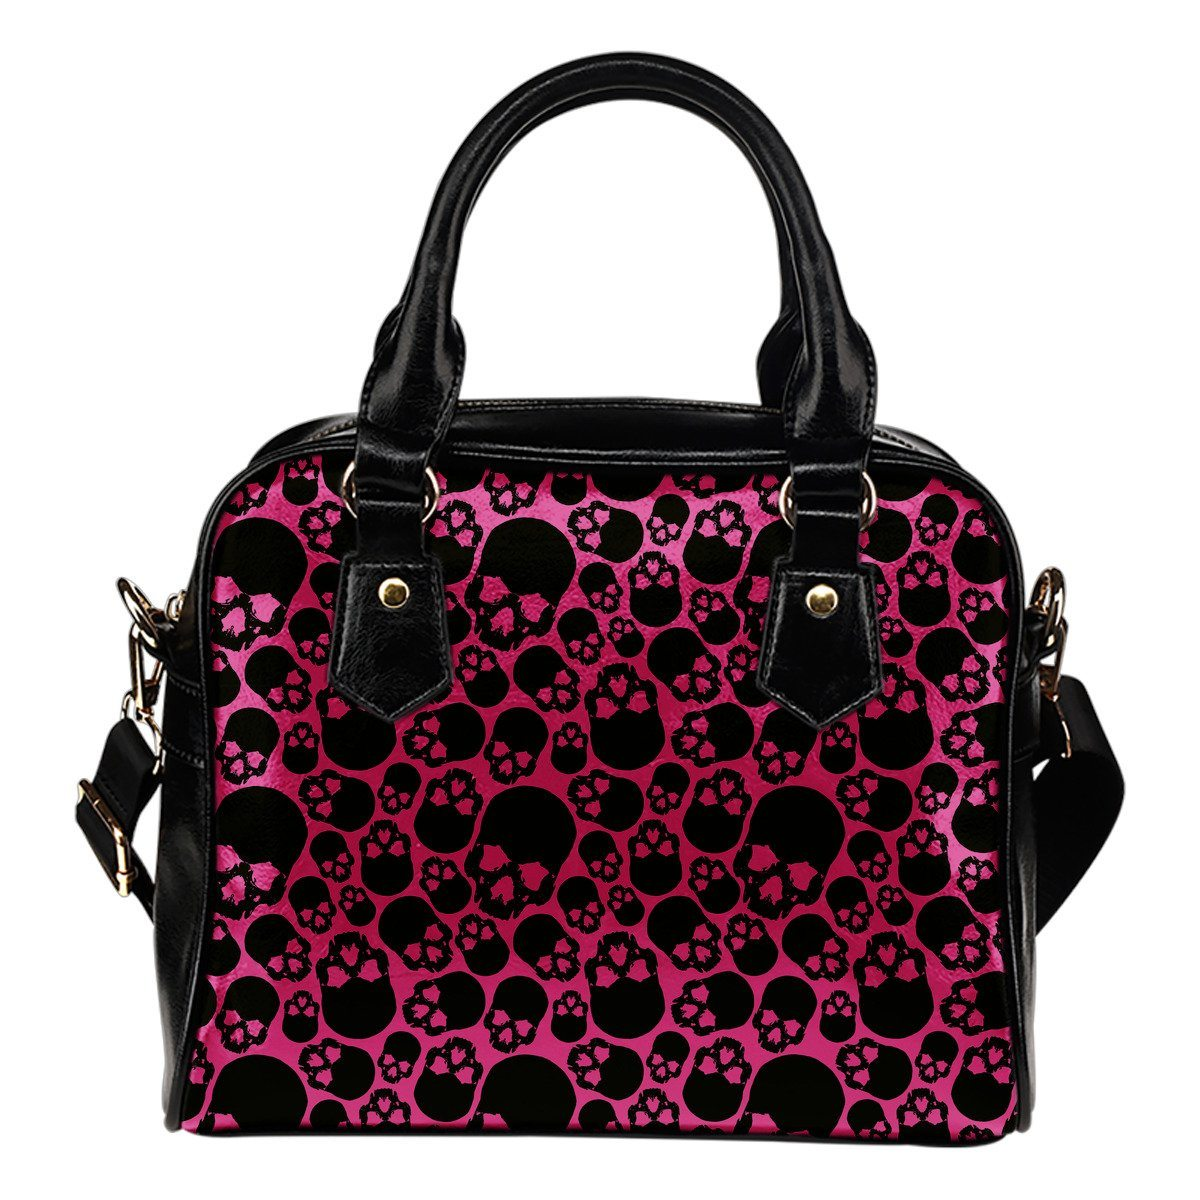 Bloody Skulls Leather Handbag